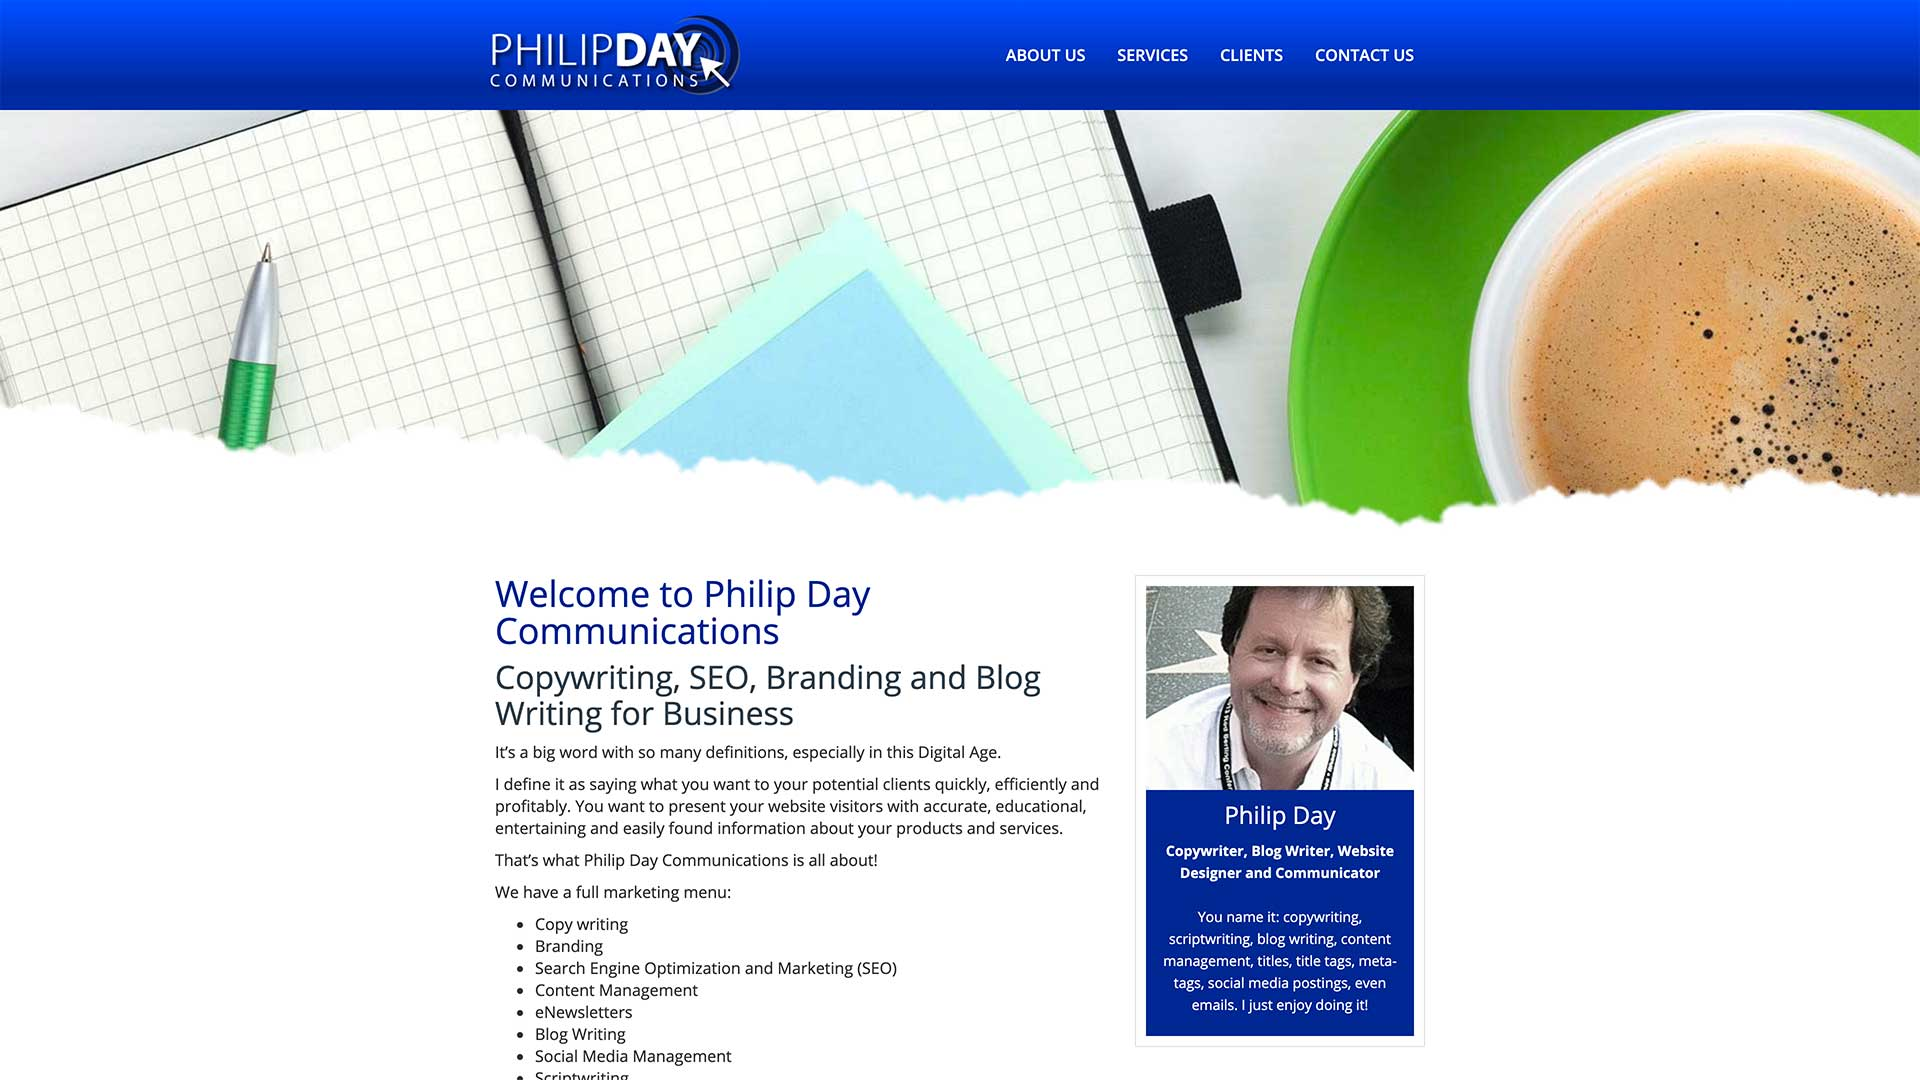 Philip Day Communications